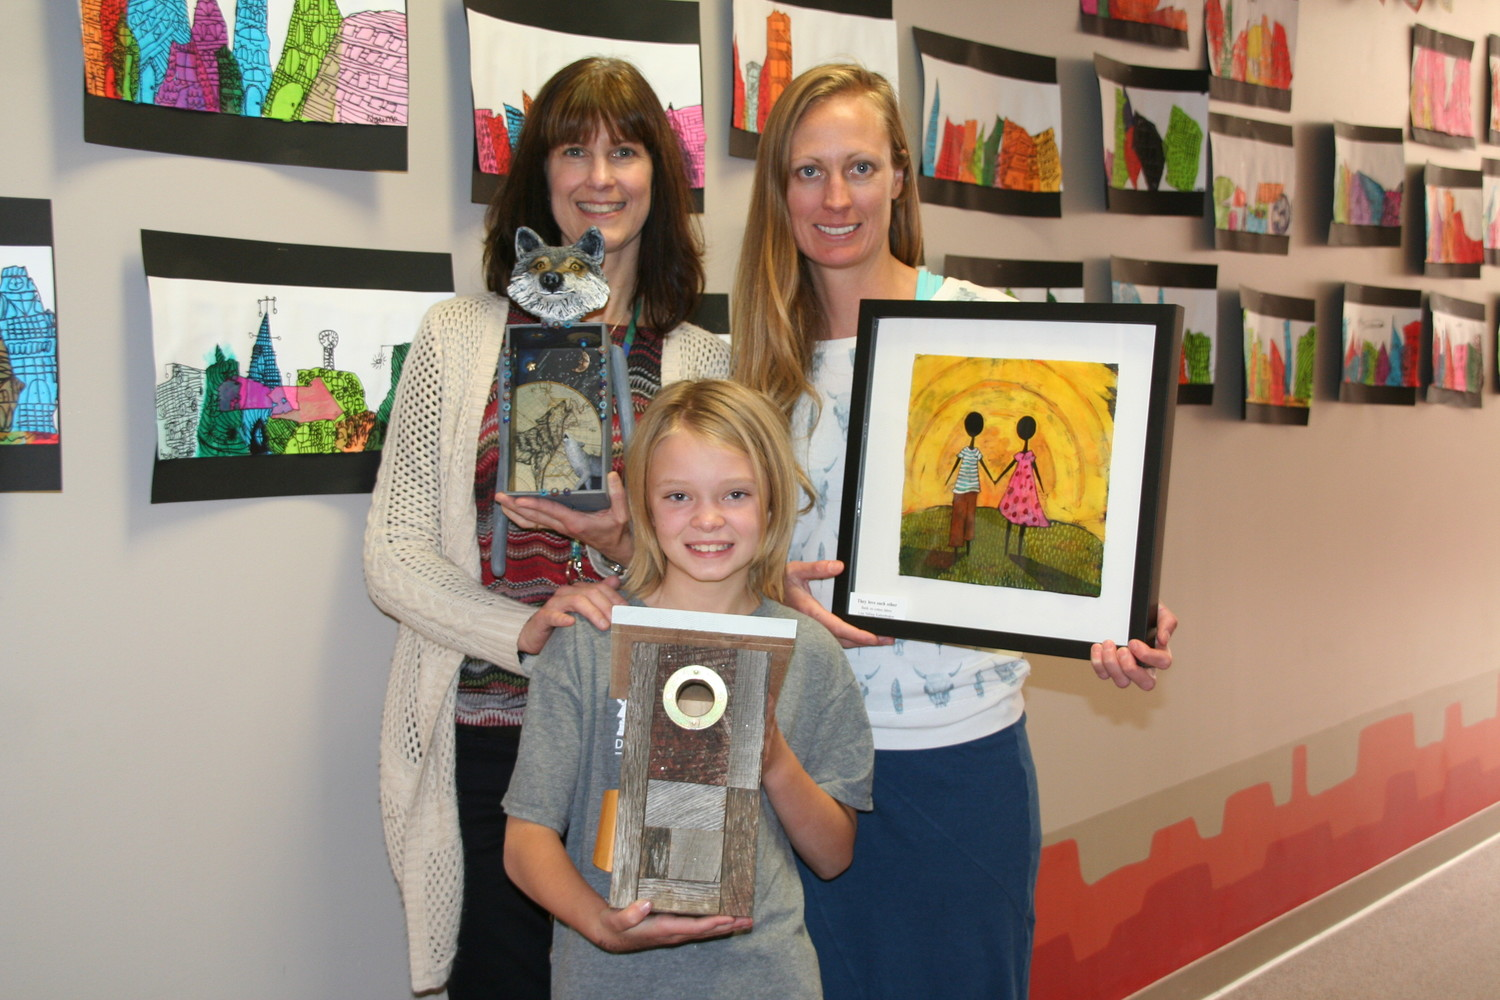 From left, Shelton's family engagement liaison Susan Kimes-Demboski and art teacher Amber BonDurant stand with fourth grader Stella Chesser holding art pieces the students purchased at this past summer's Cherry Creek Arts Festival. The festival's Janus Henderson Investors Student Art Buying Program provides students the opportunity to purchase artwork as a permanent installation for their school. The other students involved were sixth grader Will Lacey and first grader Caleb Griffin.